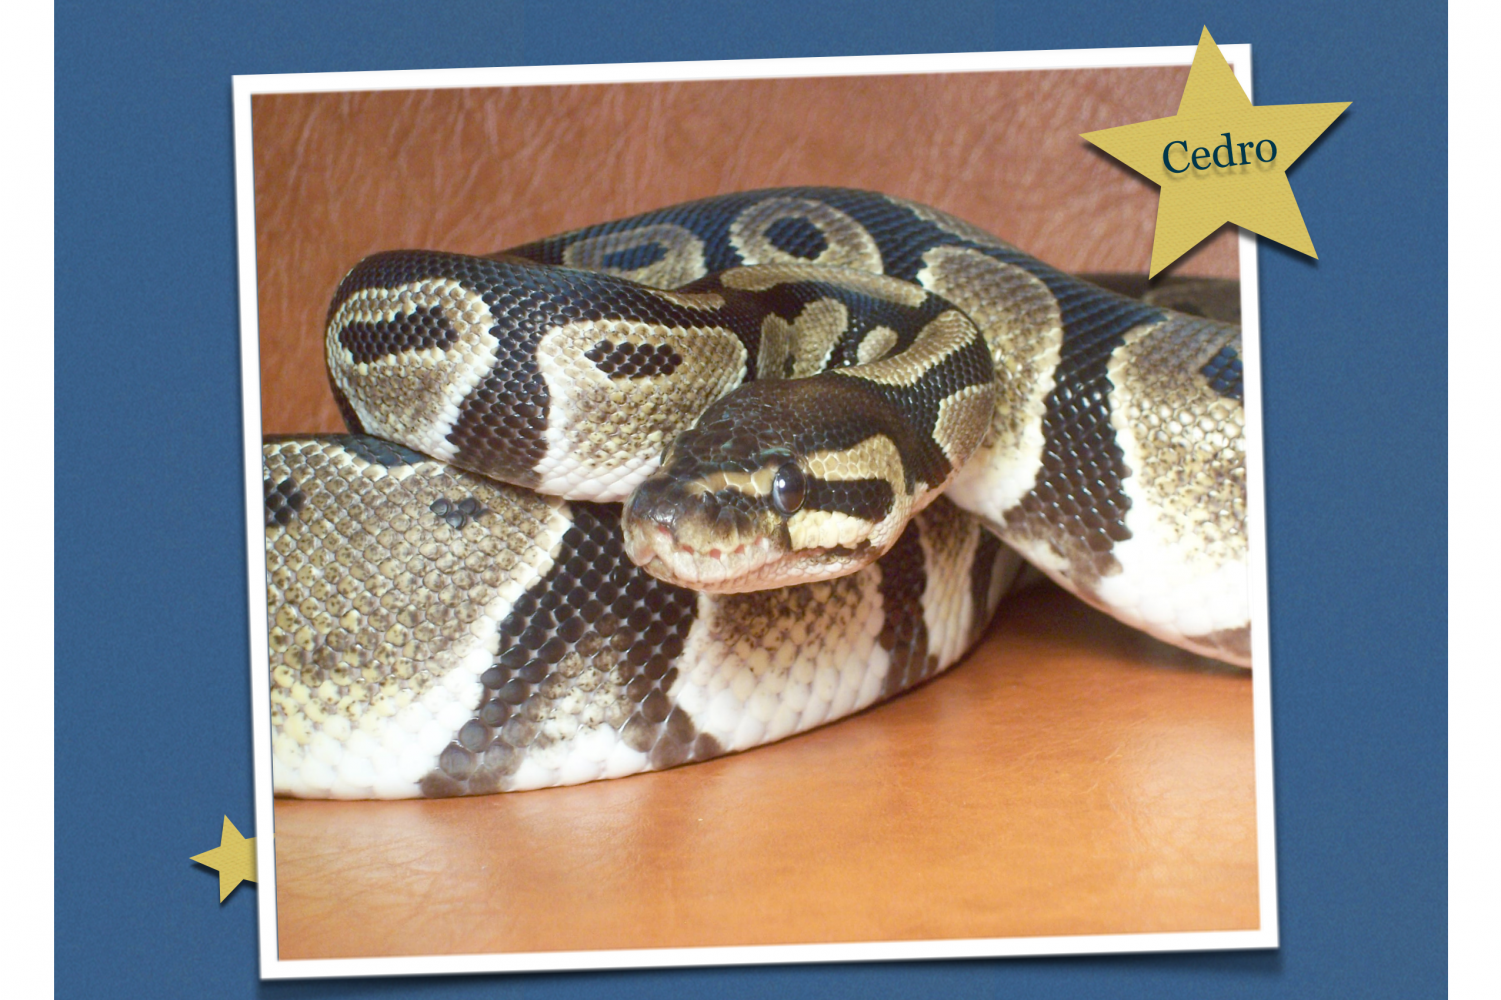 The Science department is looking to find a home for their ball python, Cedro.